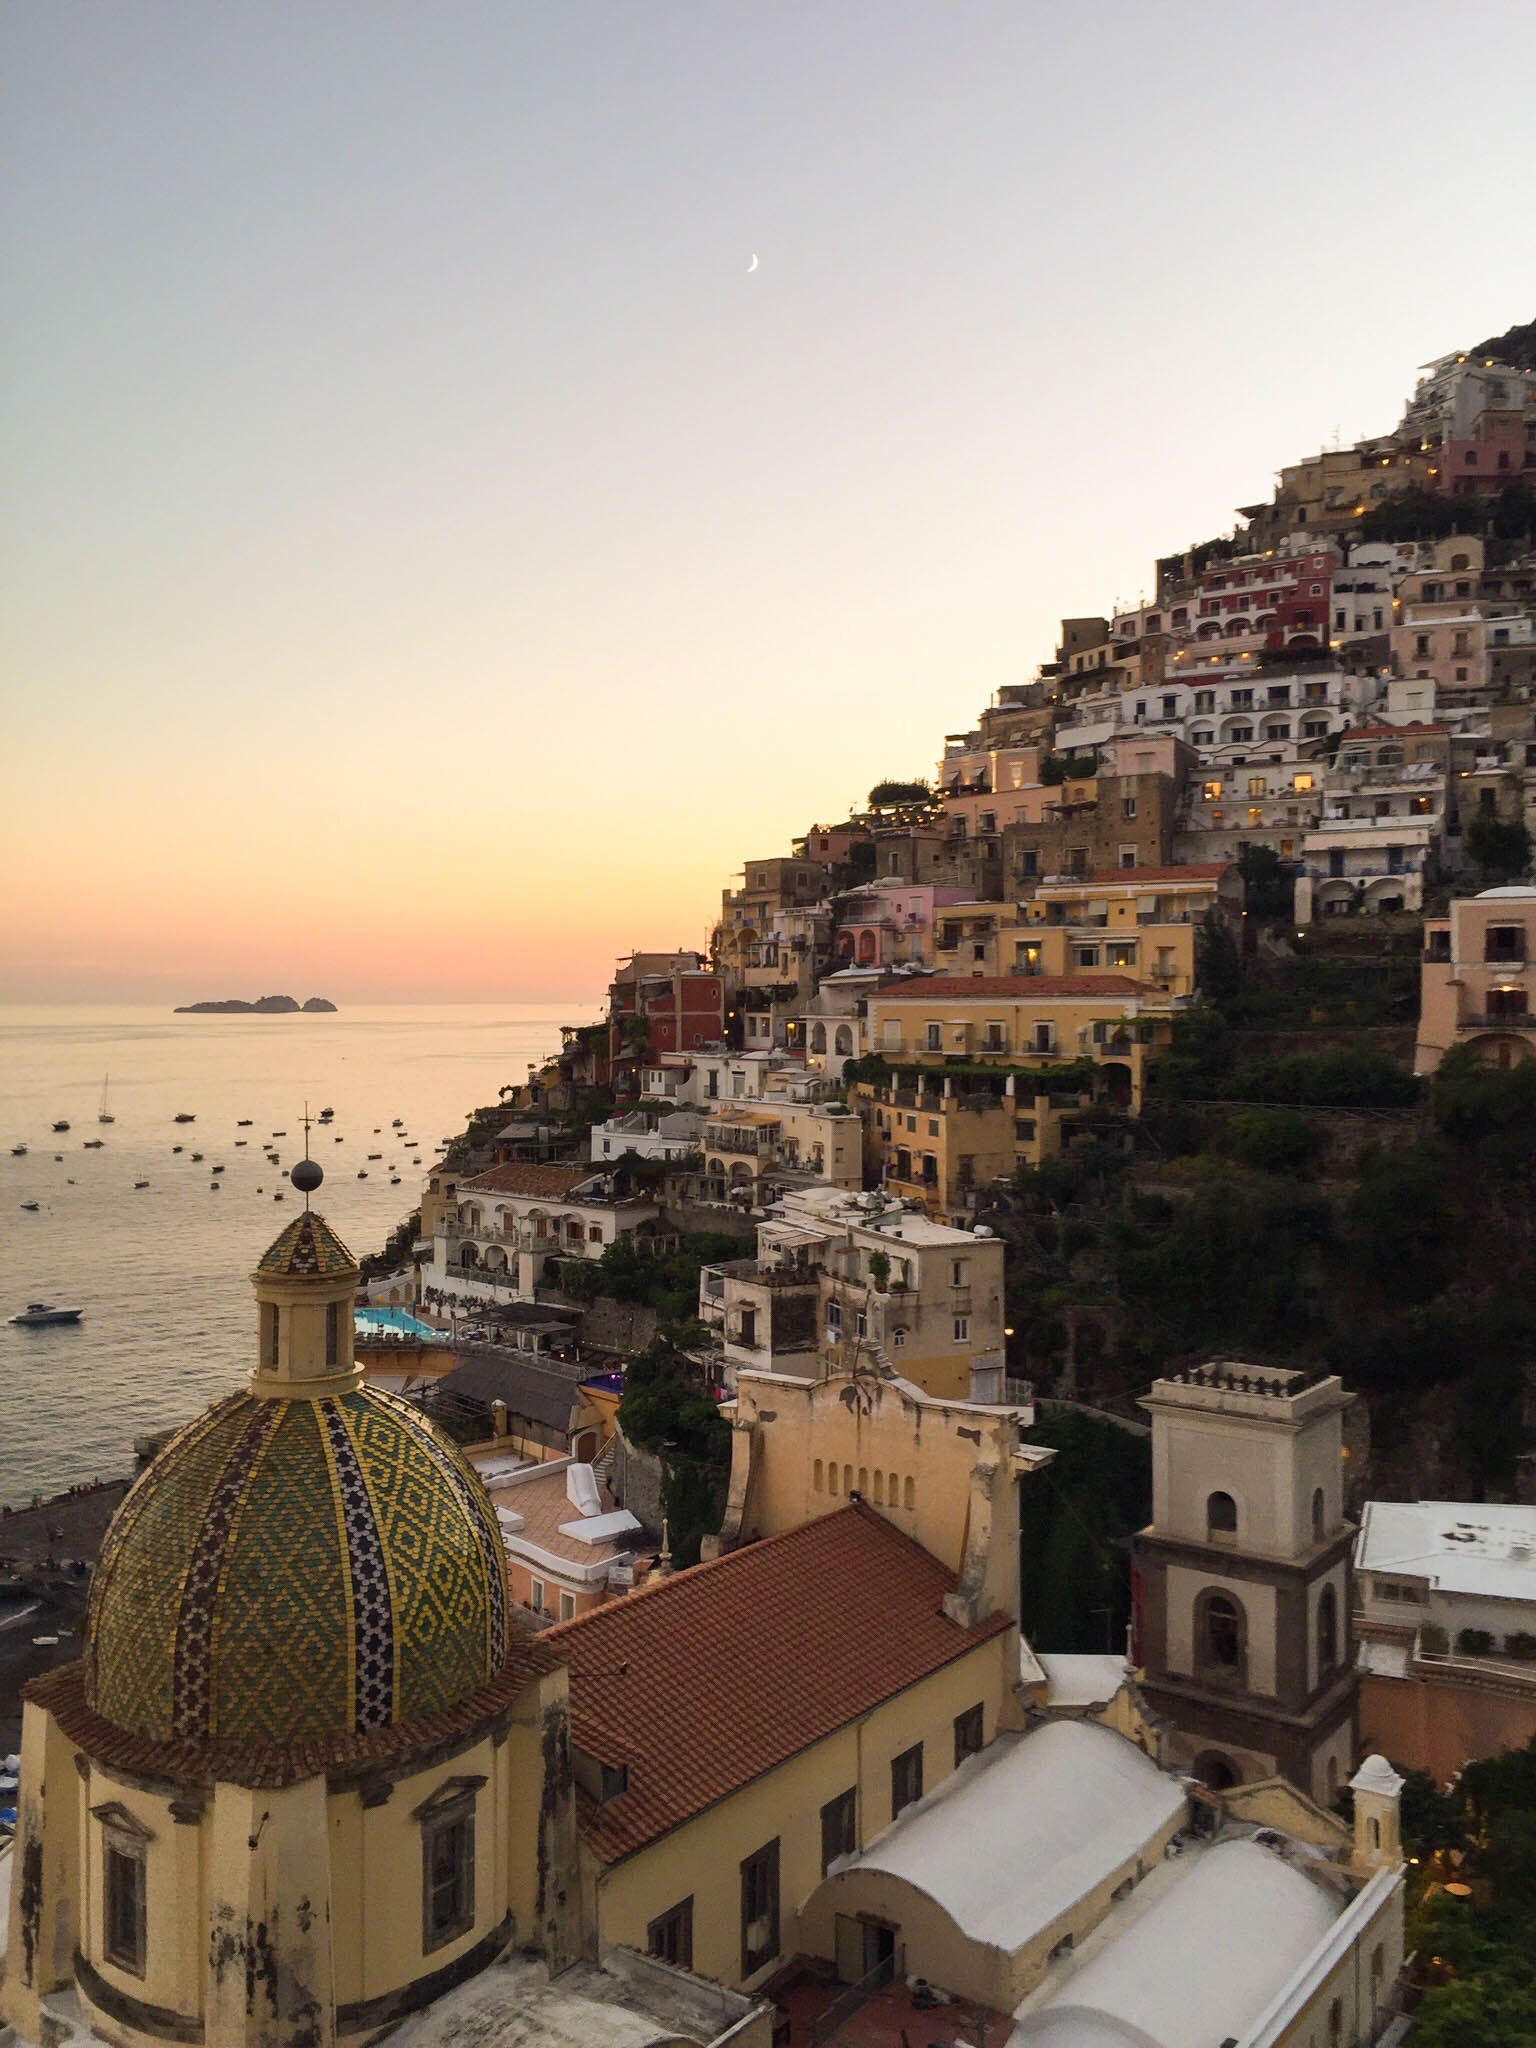 If you're not headed to Italy on your honeymoon, it's a mistake. Let us help you help yourself to the honeymoon of your dreams in the Amalfi Coast.